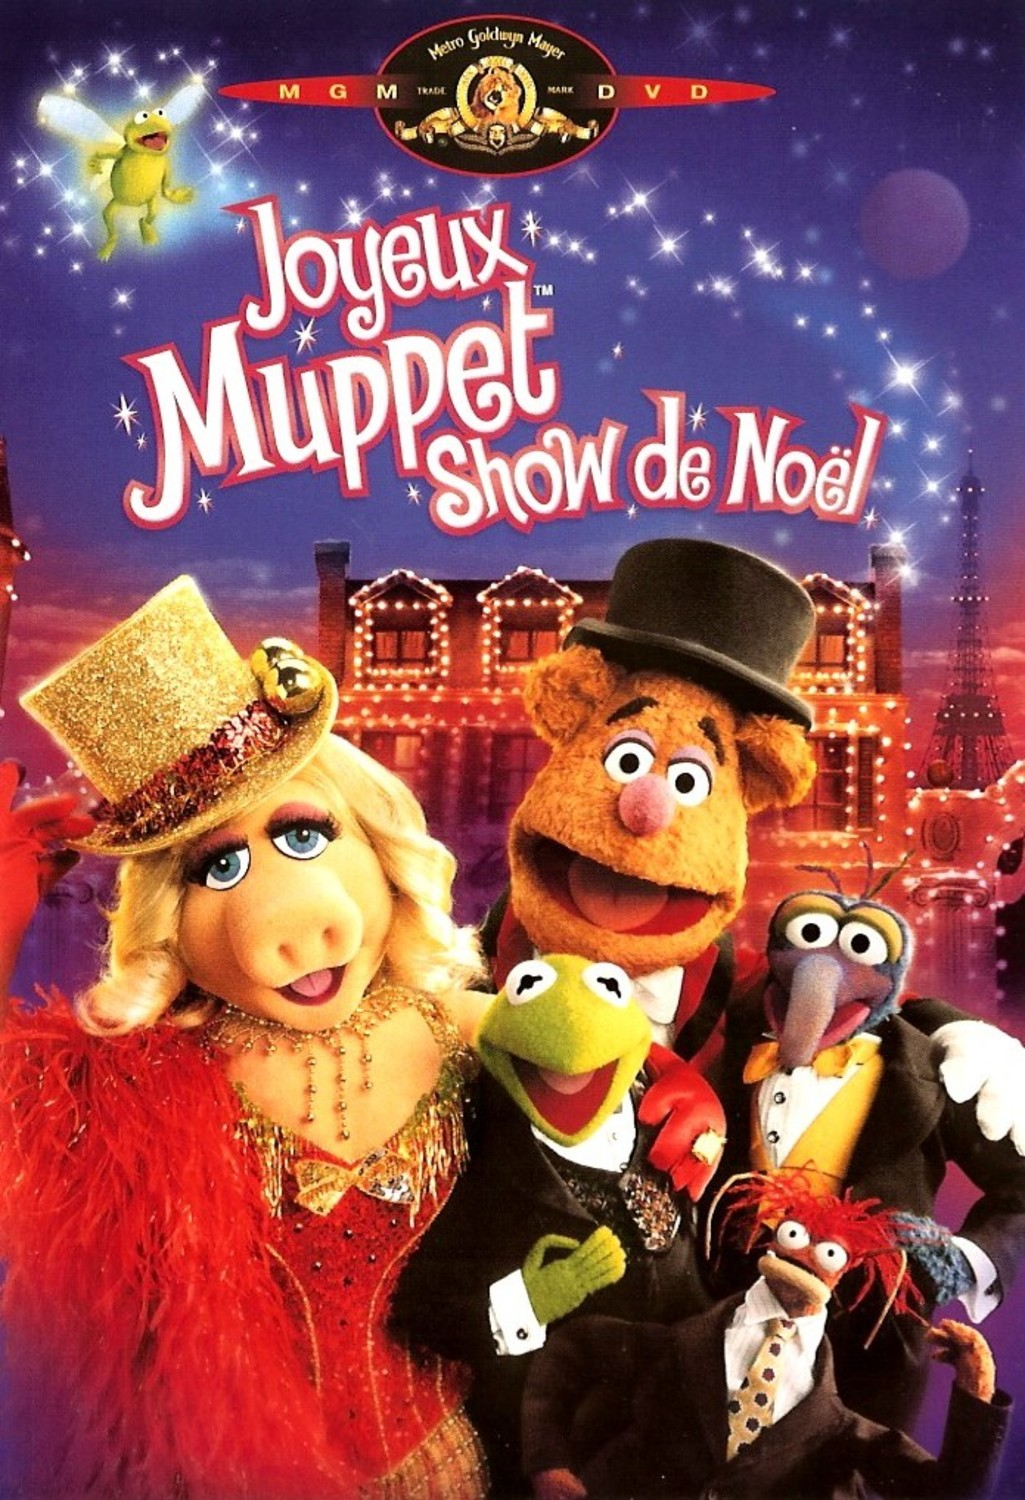 affiche poster joyeux muppet show noel very merry movie christmas disney